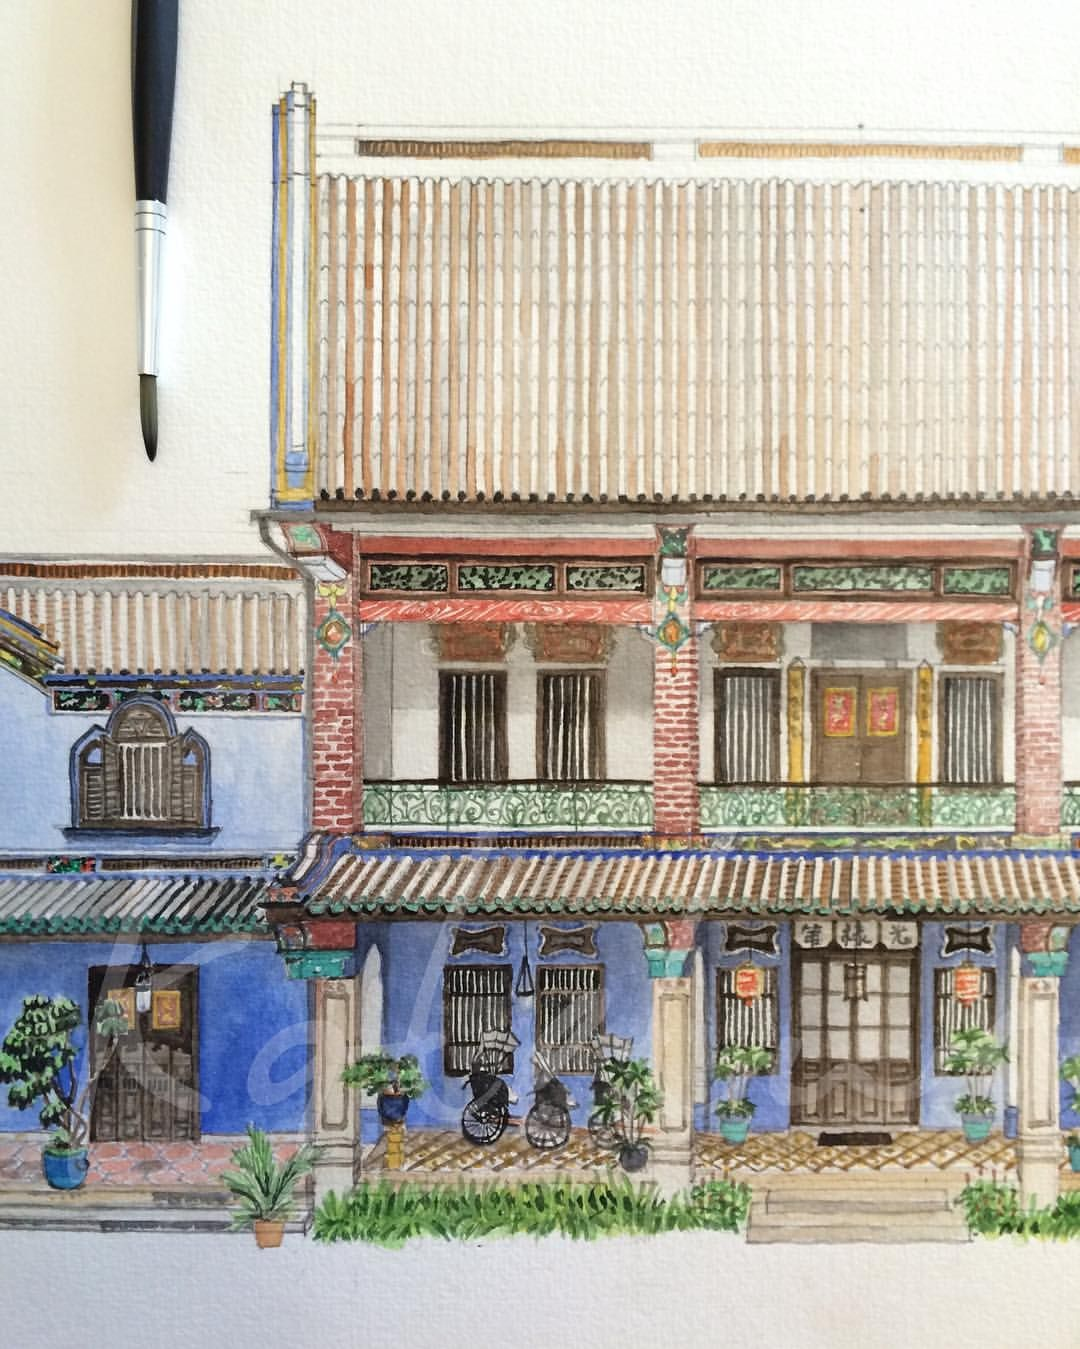 Pin By Tansri Yelinna On Store Facade Illustration Watercolor Etc Landscape Sketch Architecture Sketch Chinese Architecture